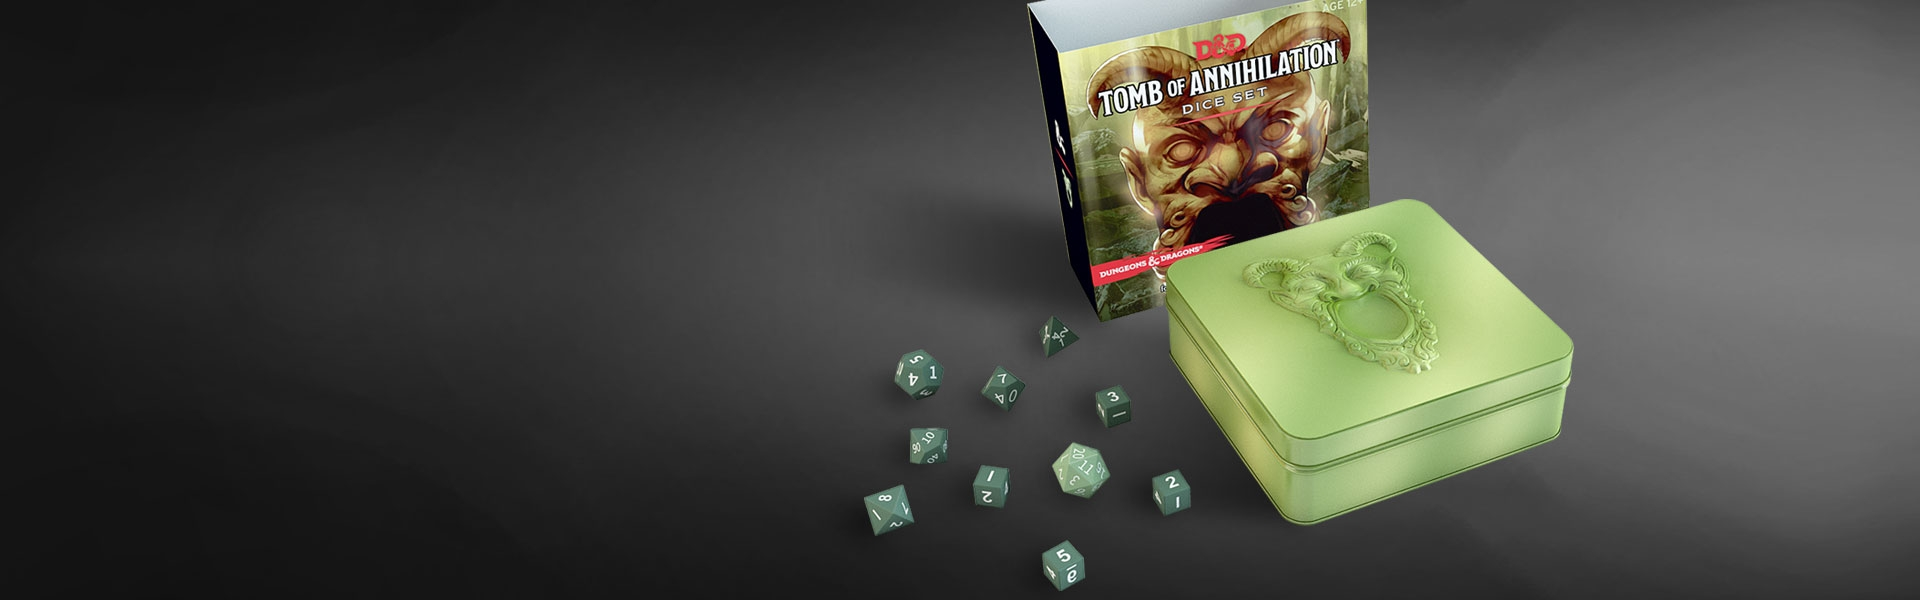 D D Tomb Of Annihilation Dice Dungeons Dragons